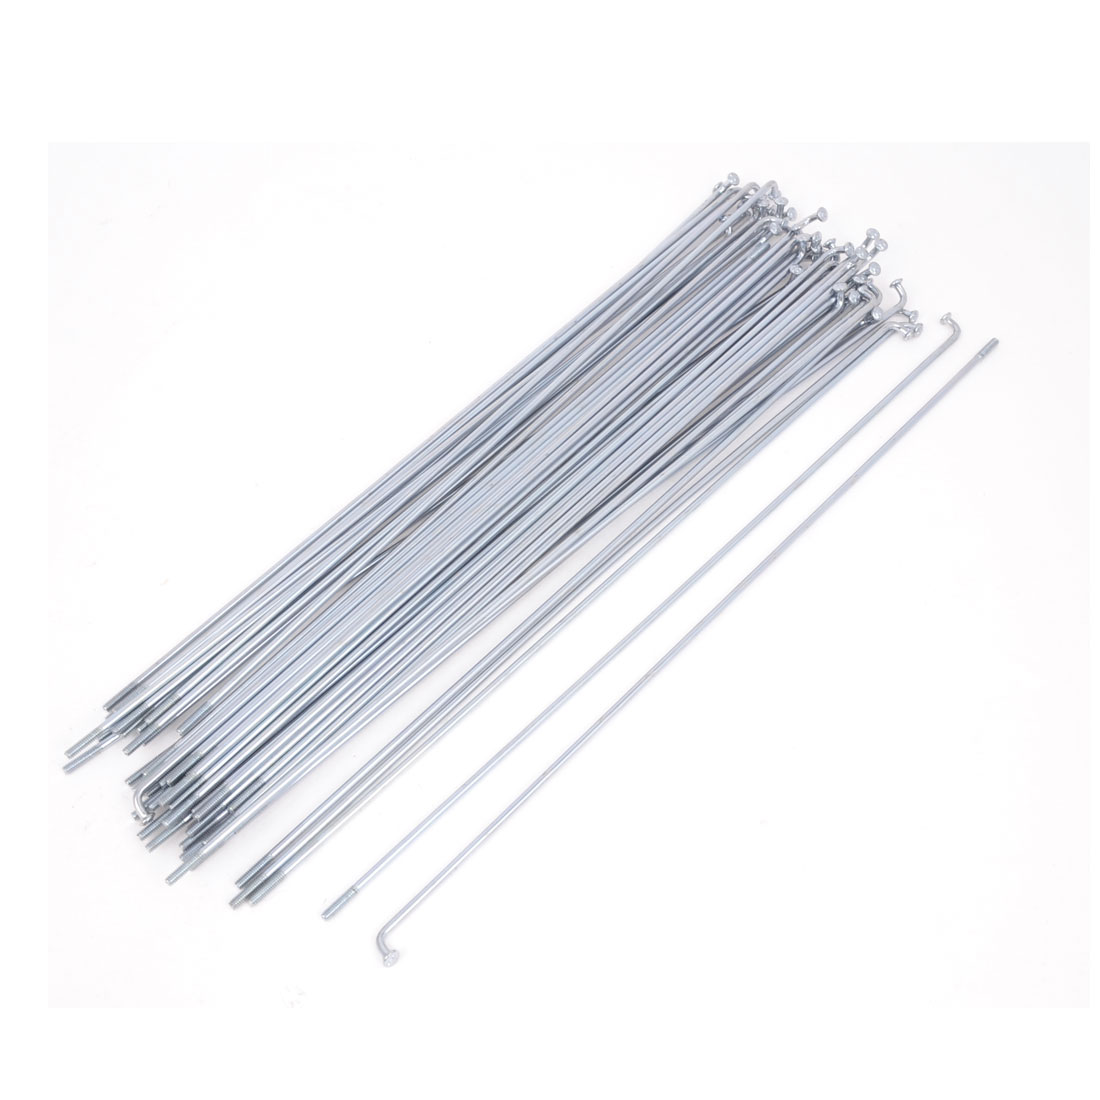 "50 Pcs Silver Tone Metal Cycle Bike Bicycle Spokes 8.7"" Long"